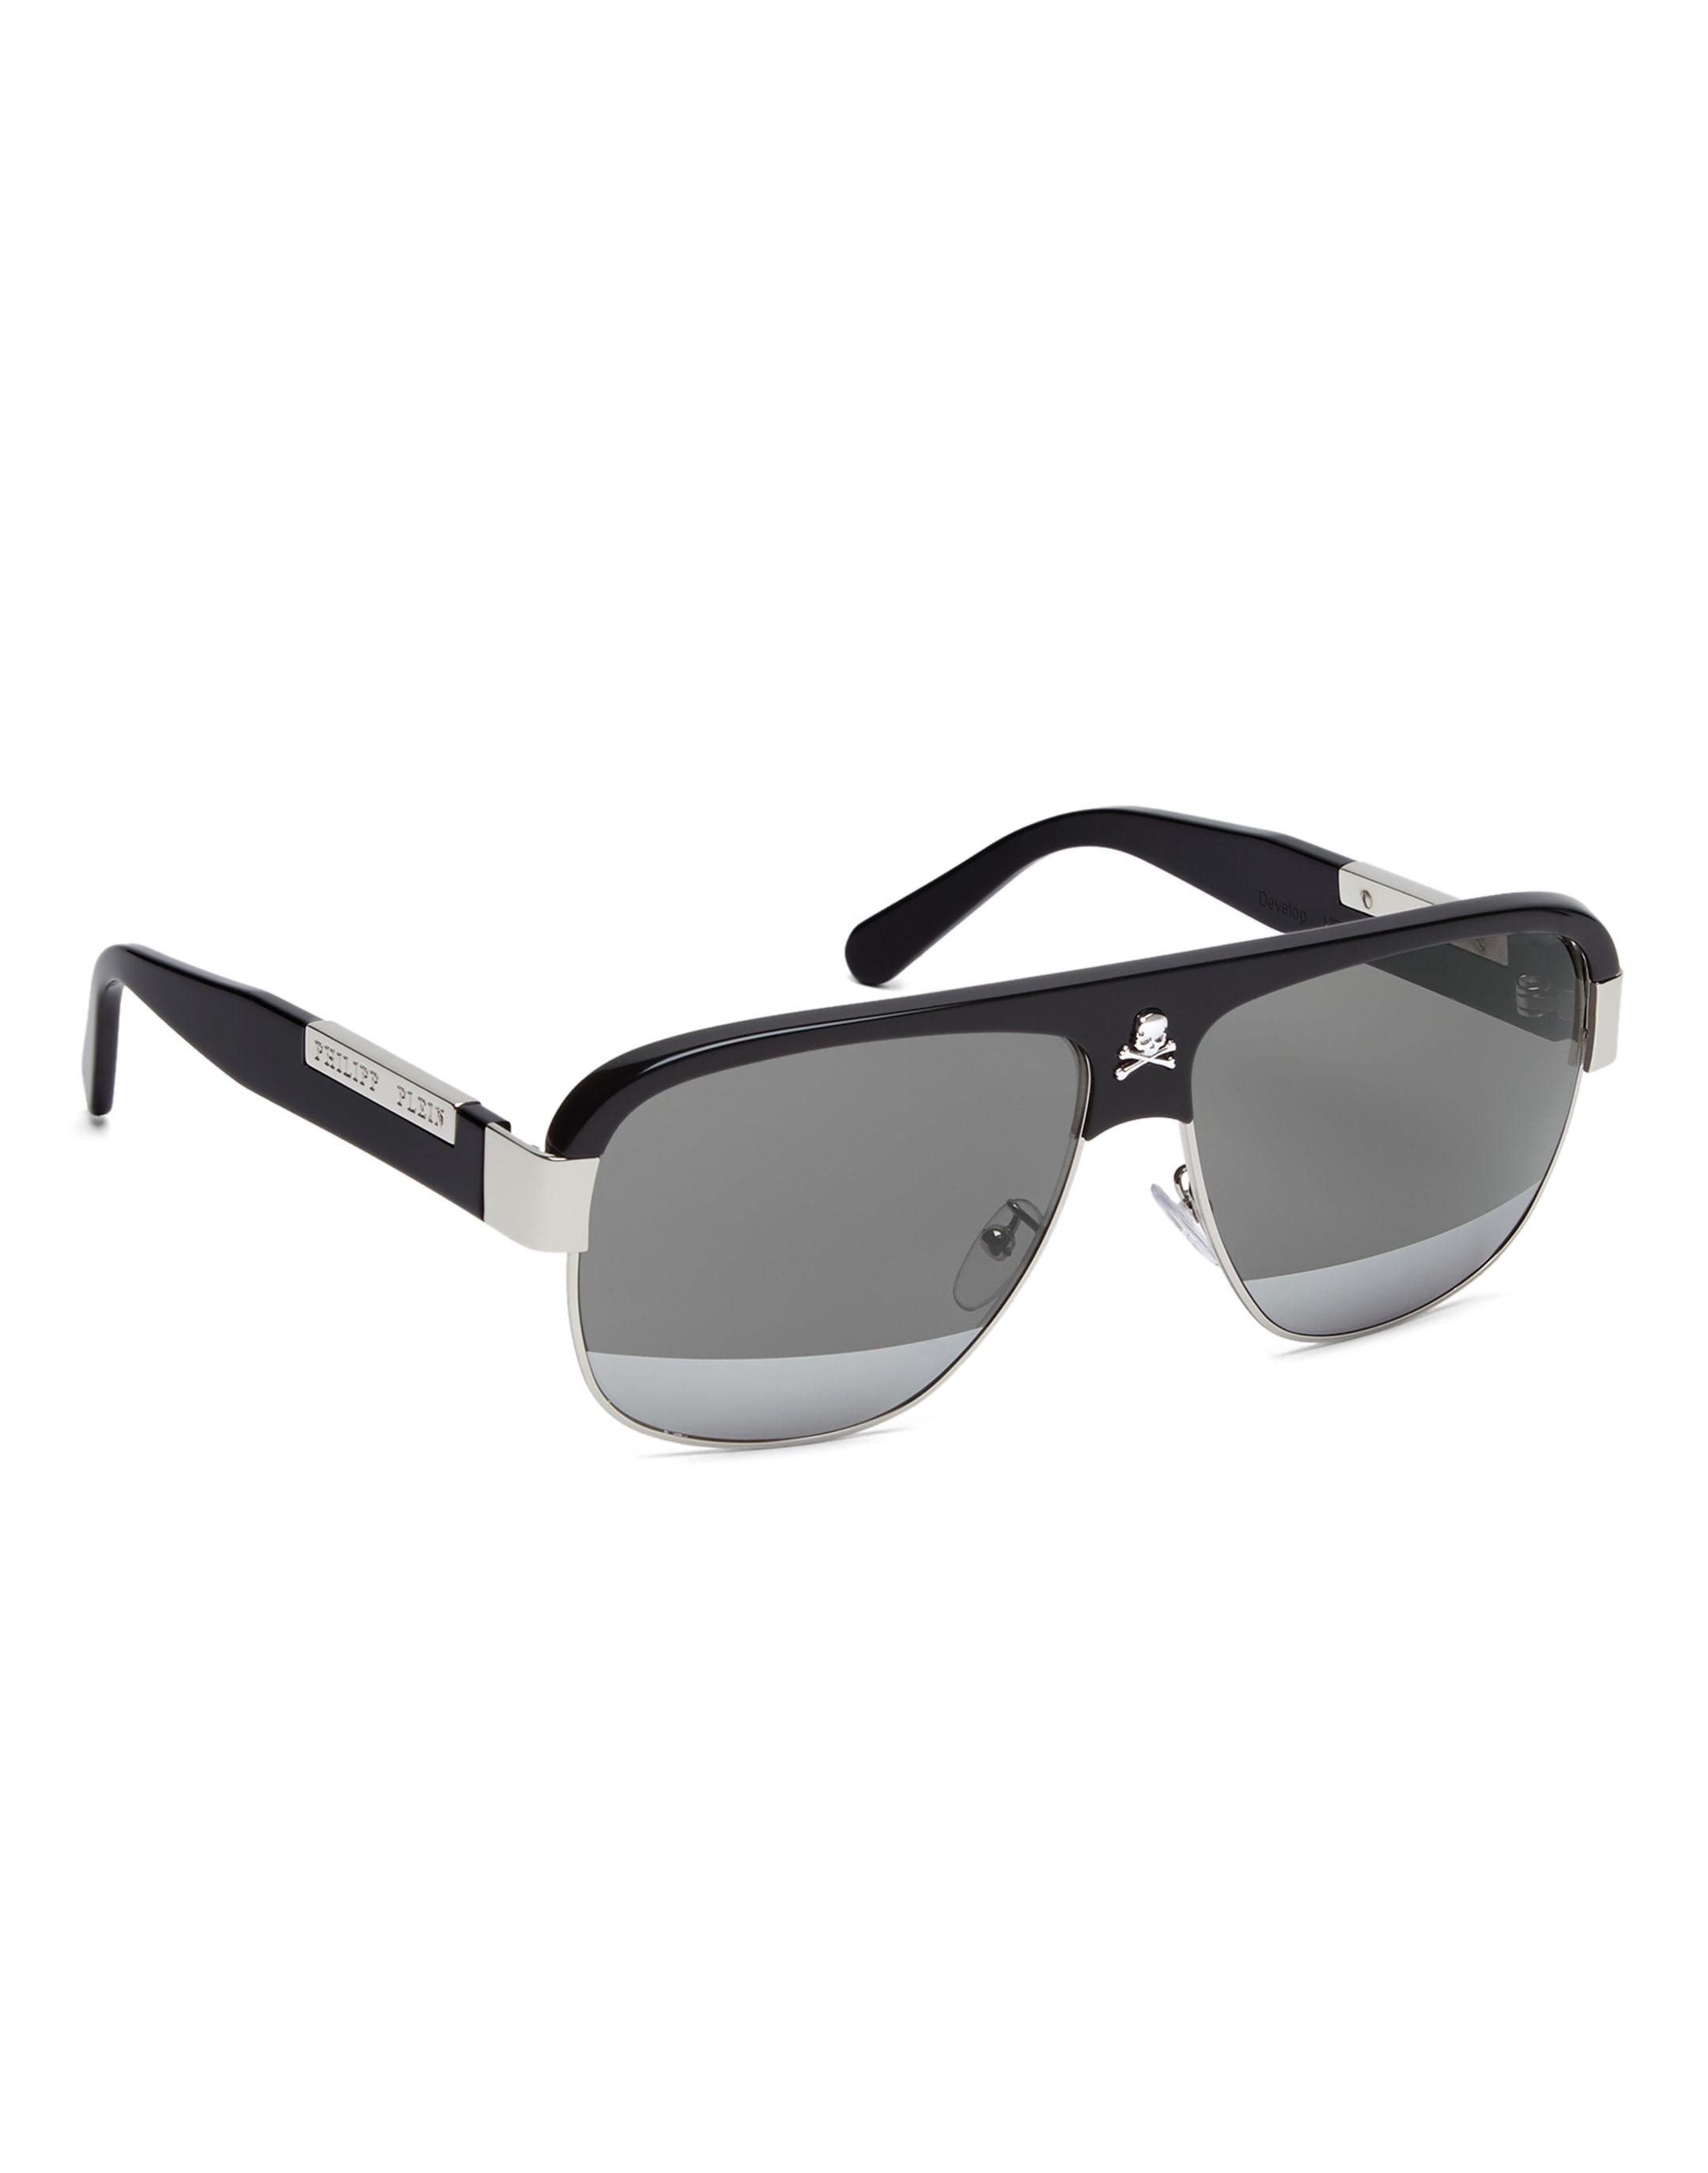 a25c3c24739 Philipp Plein Sunglasses